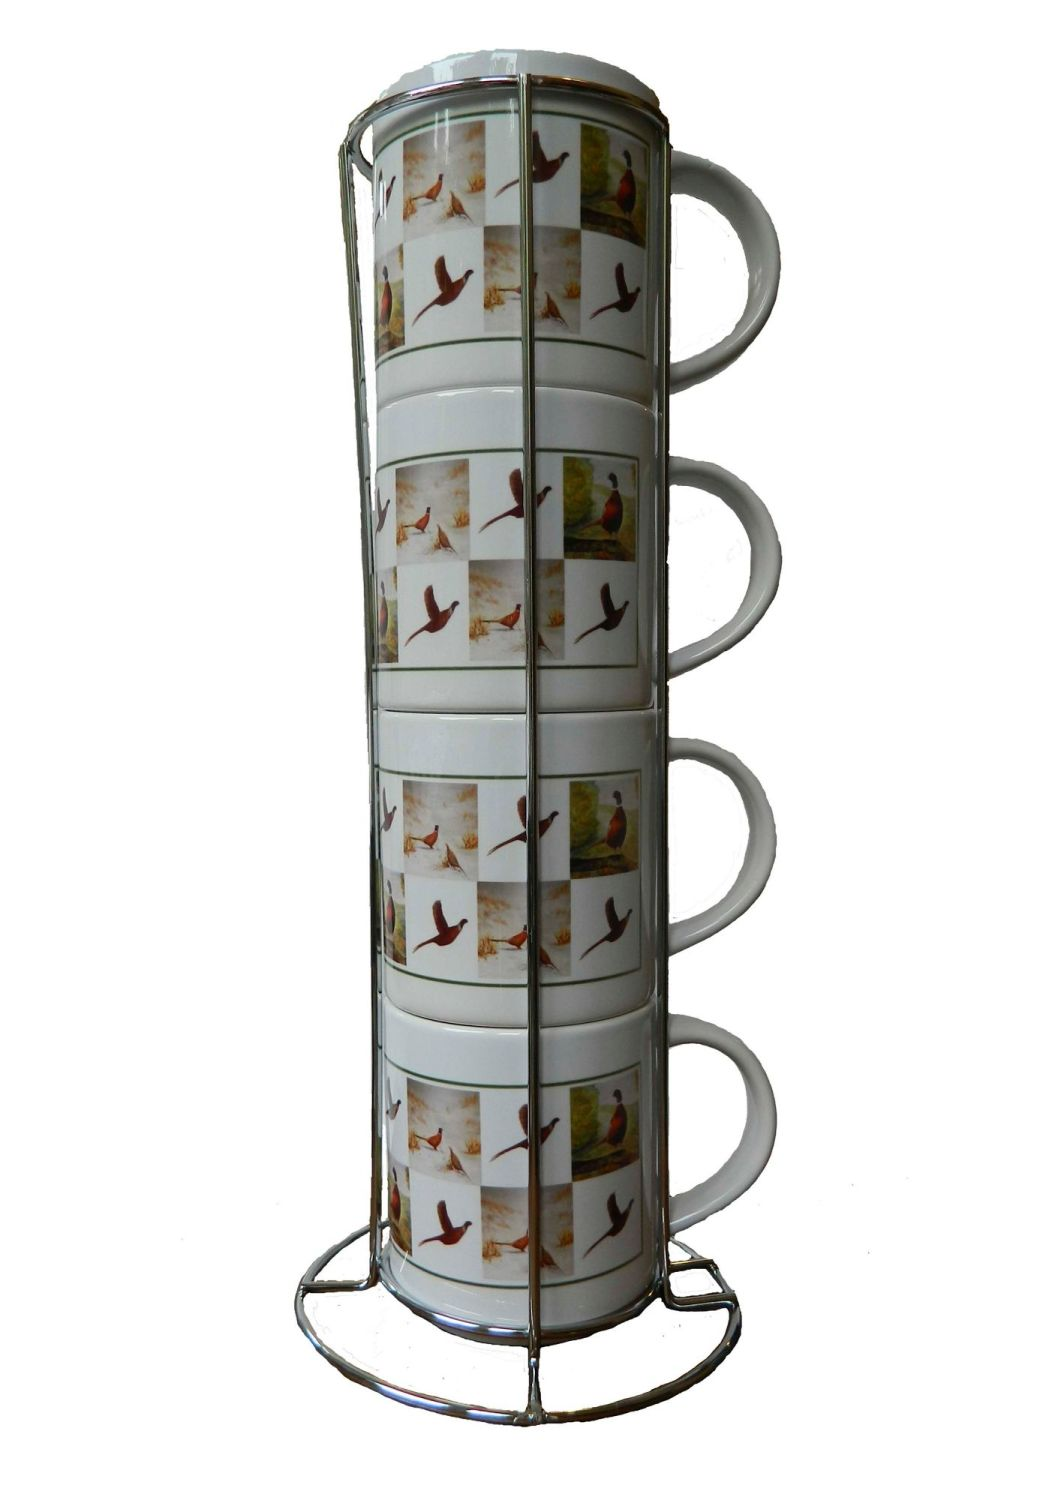 New Product Pheasant stacking mugs